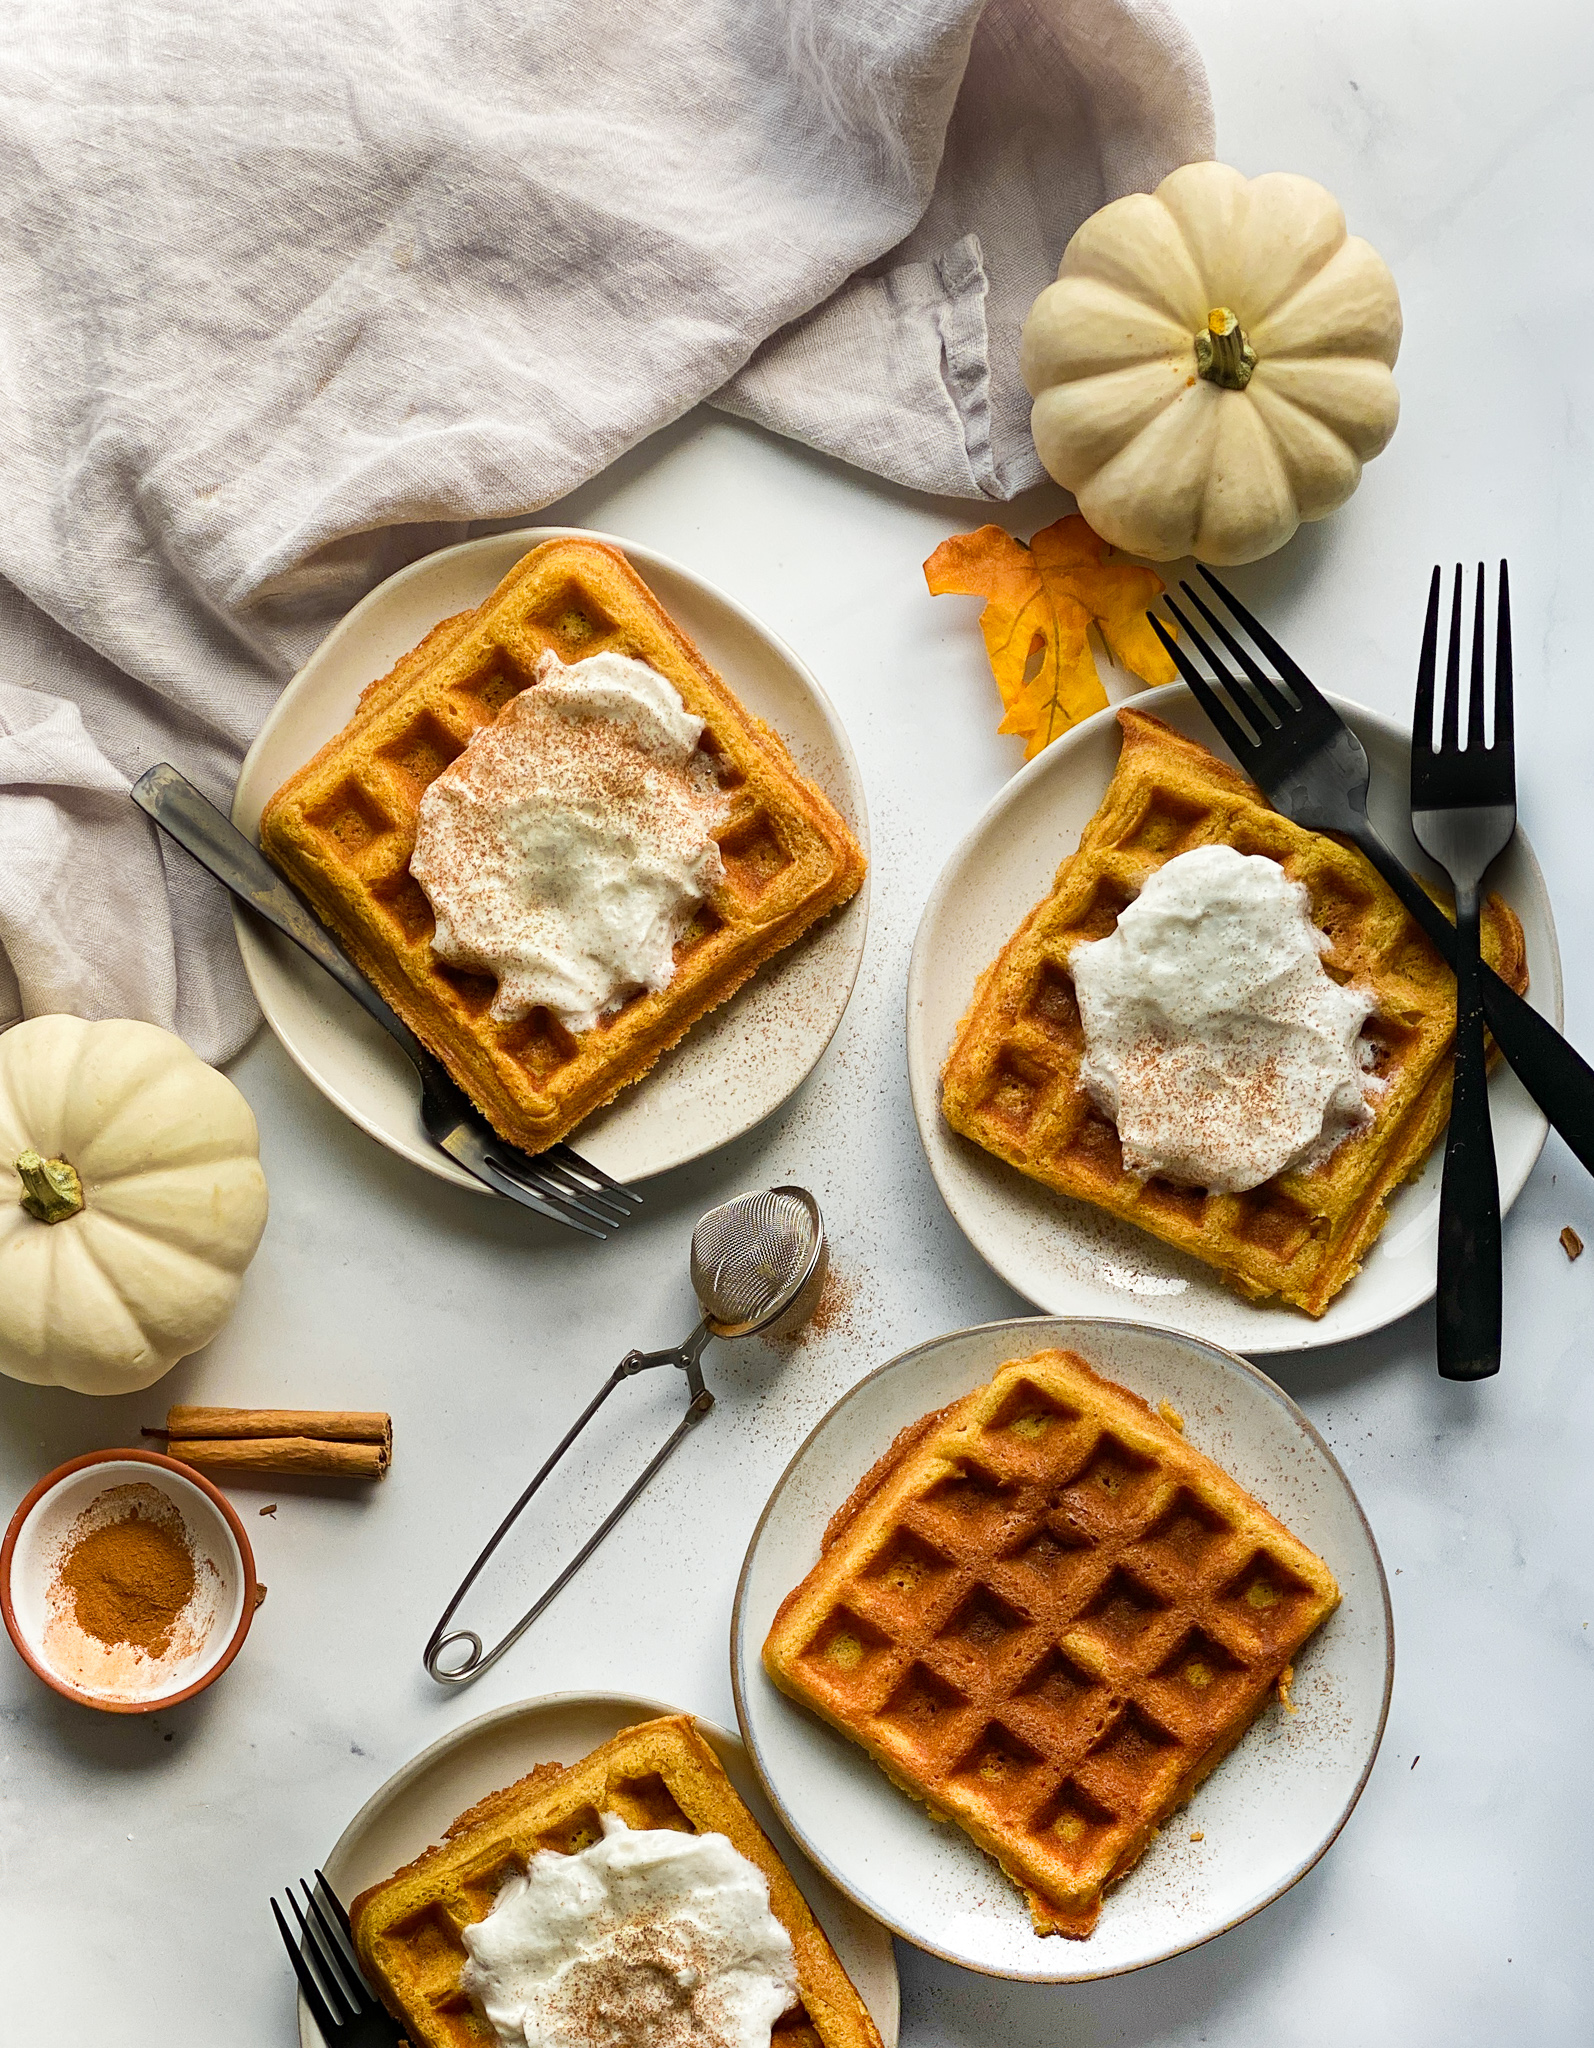 Grain-free pumpkin waffles sitting on a marble counter top on grey plates. There are four different plates and three of them have a dollop of fresh whipped cream and a dash of cinnamon on them.